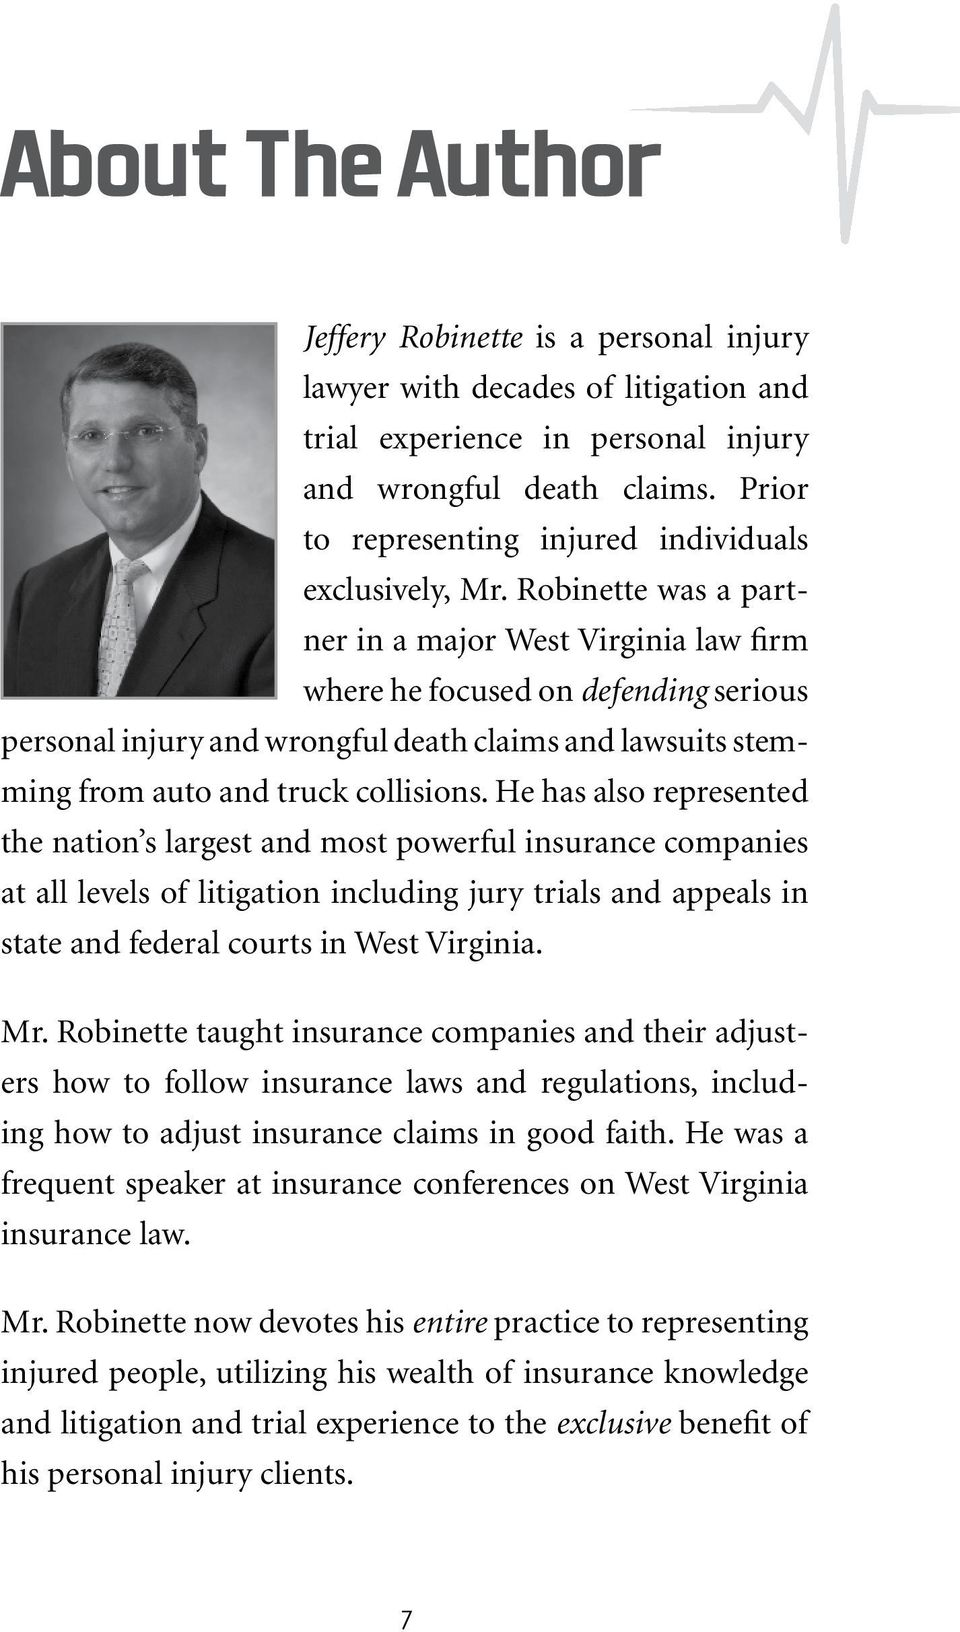 Robinette was a partner in a major West Virginia law firm where he focused on defending serious personal injury and wrongful death claims and lawsuits stemming from auto and truck collisions.